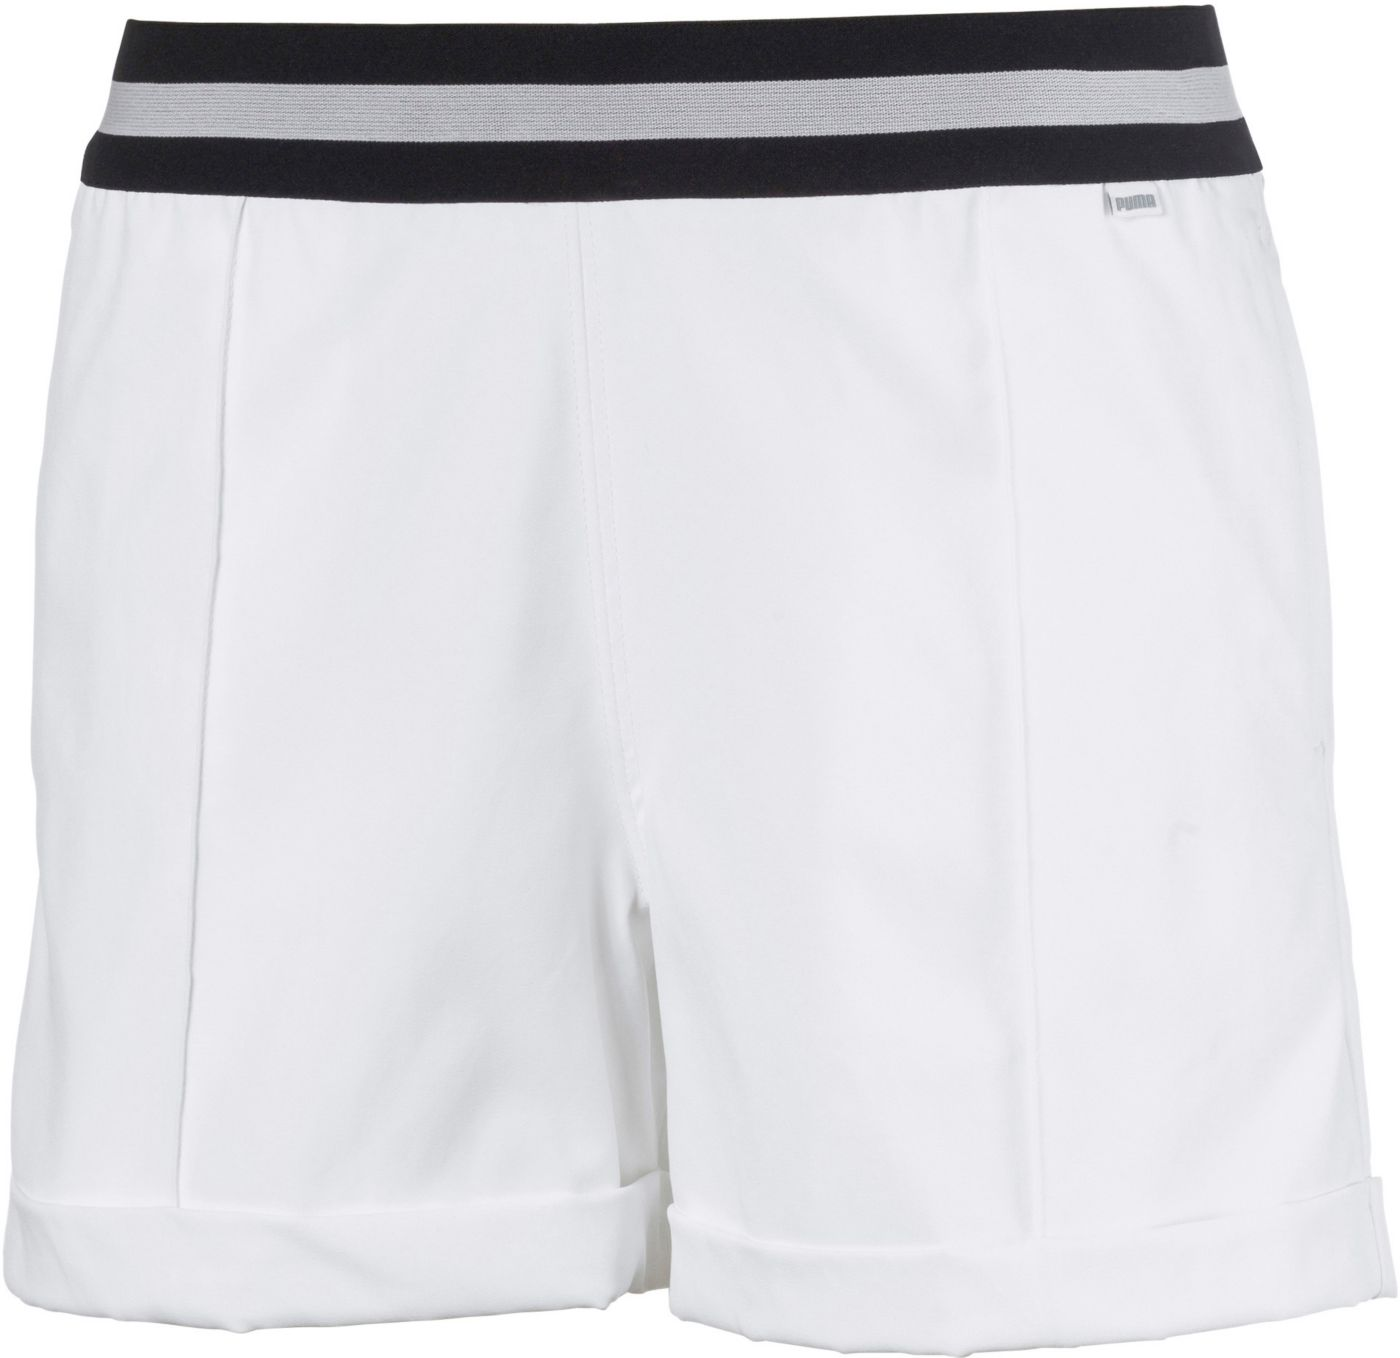 PUMA Women's Elastic Golf Shorts